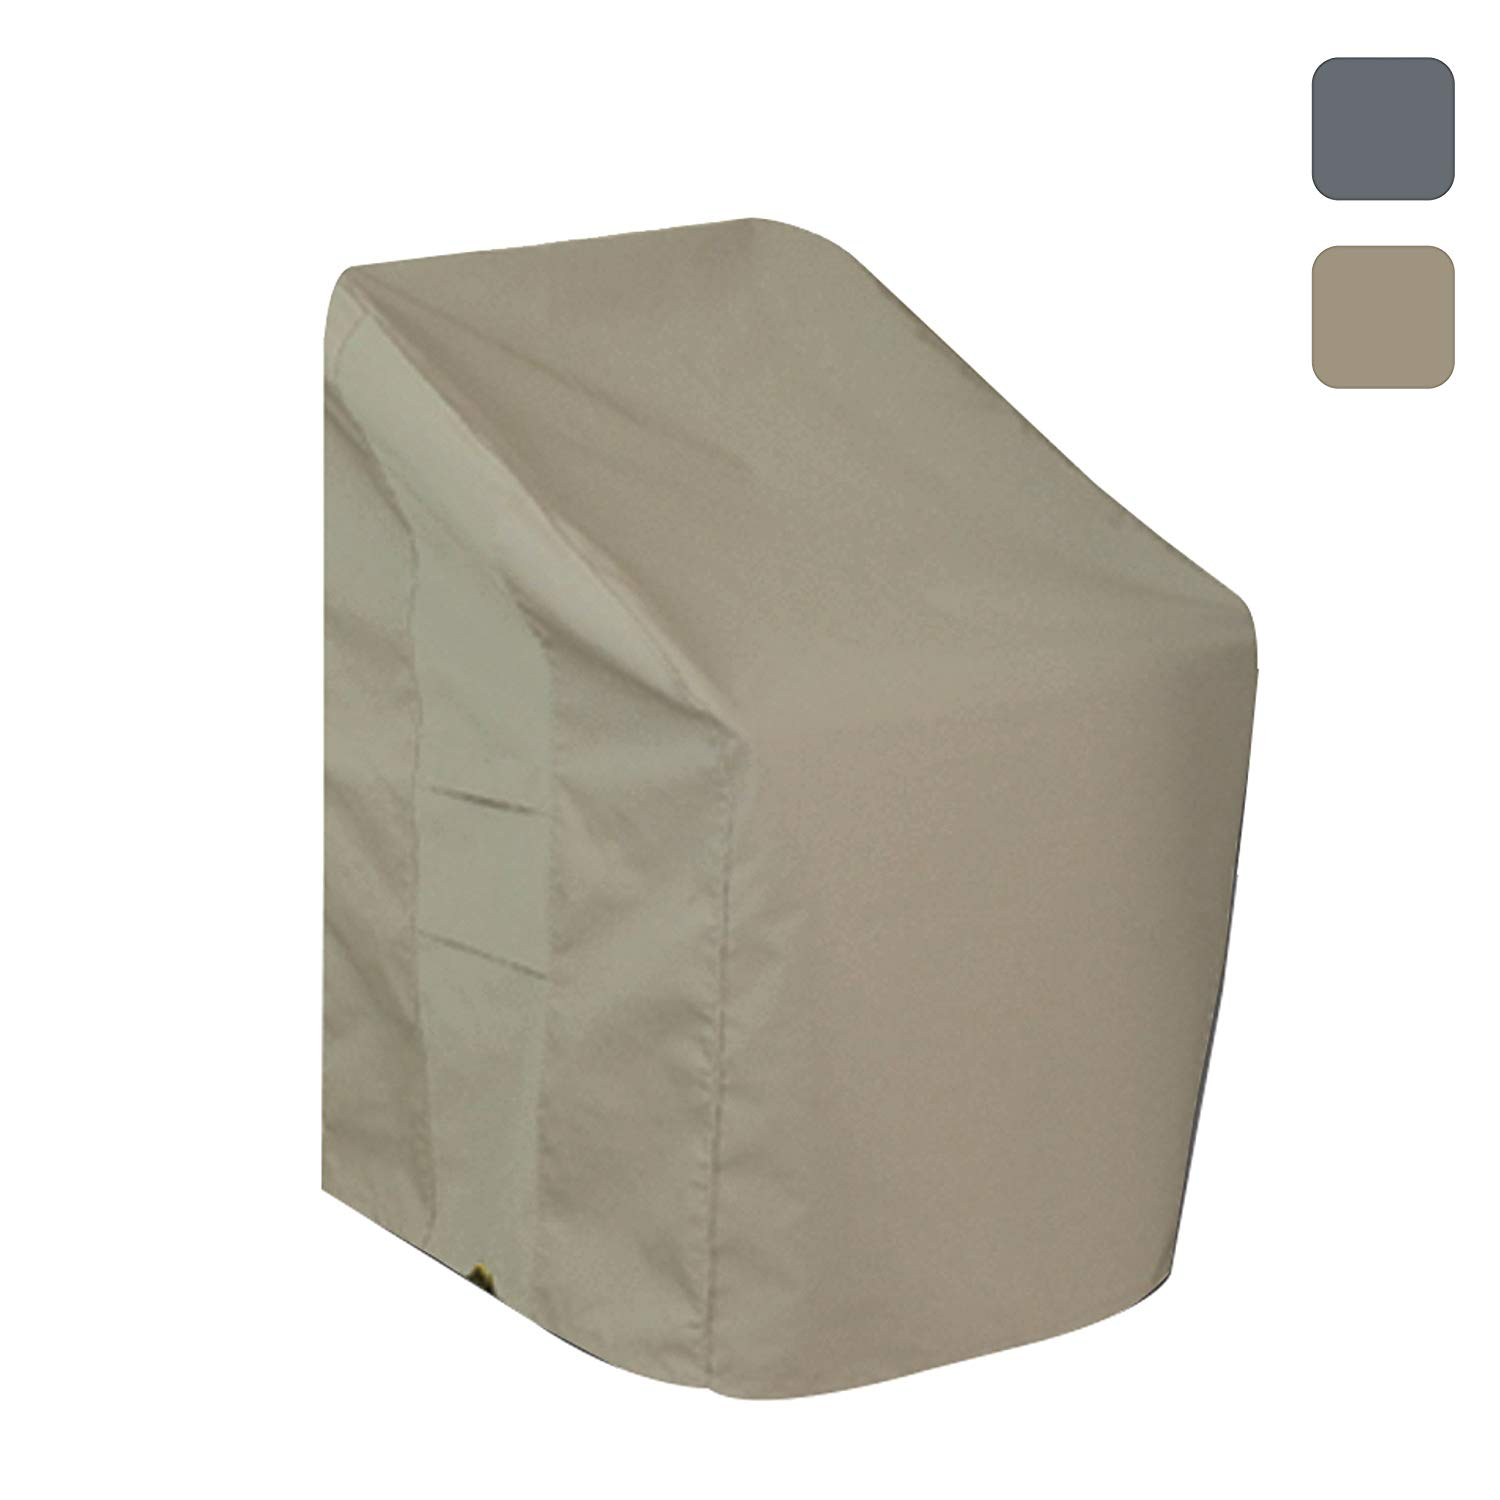 Patio Chair Cover- Waterproof, with Air vents, 100% UV-Resistant, 1000 D Both Side PVC Coated, Outdoor Furniture Stackable Chairs Covers with Drawstring for Snug fit to Withstand Winds & Storms, Beige